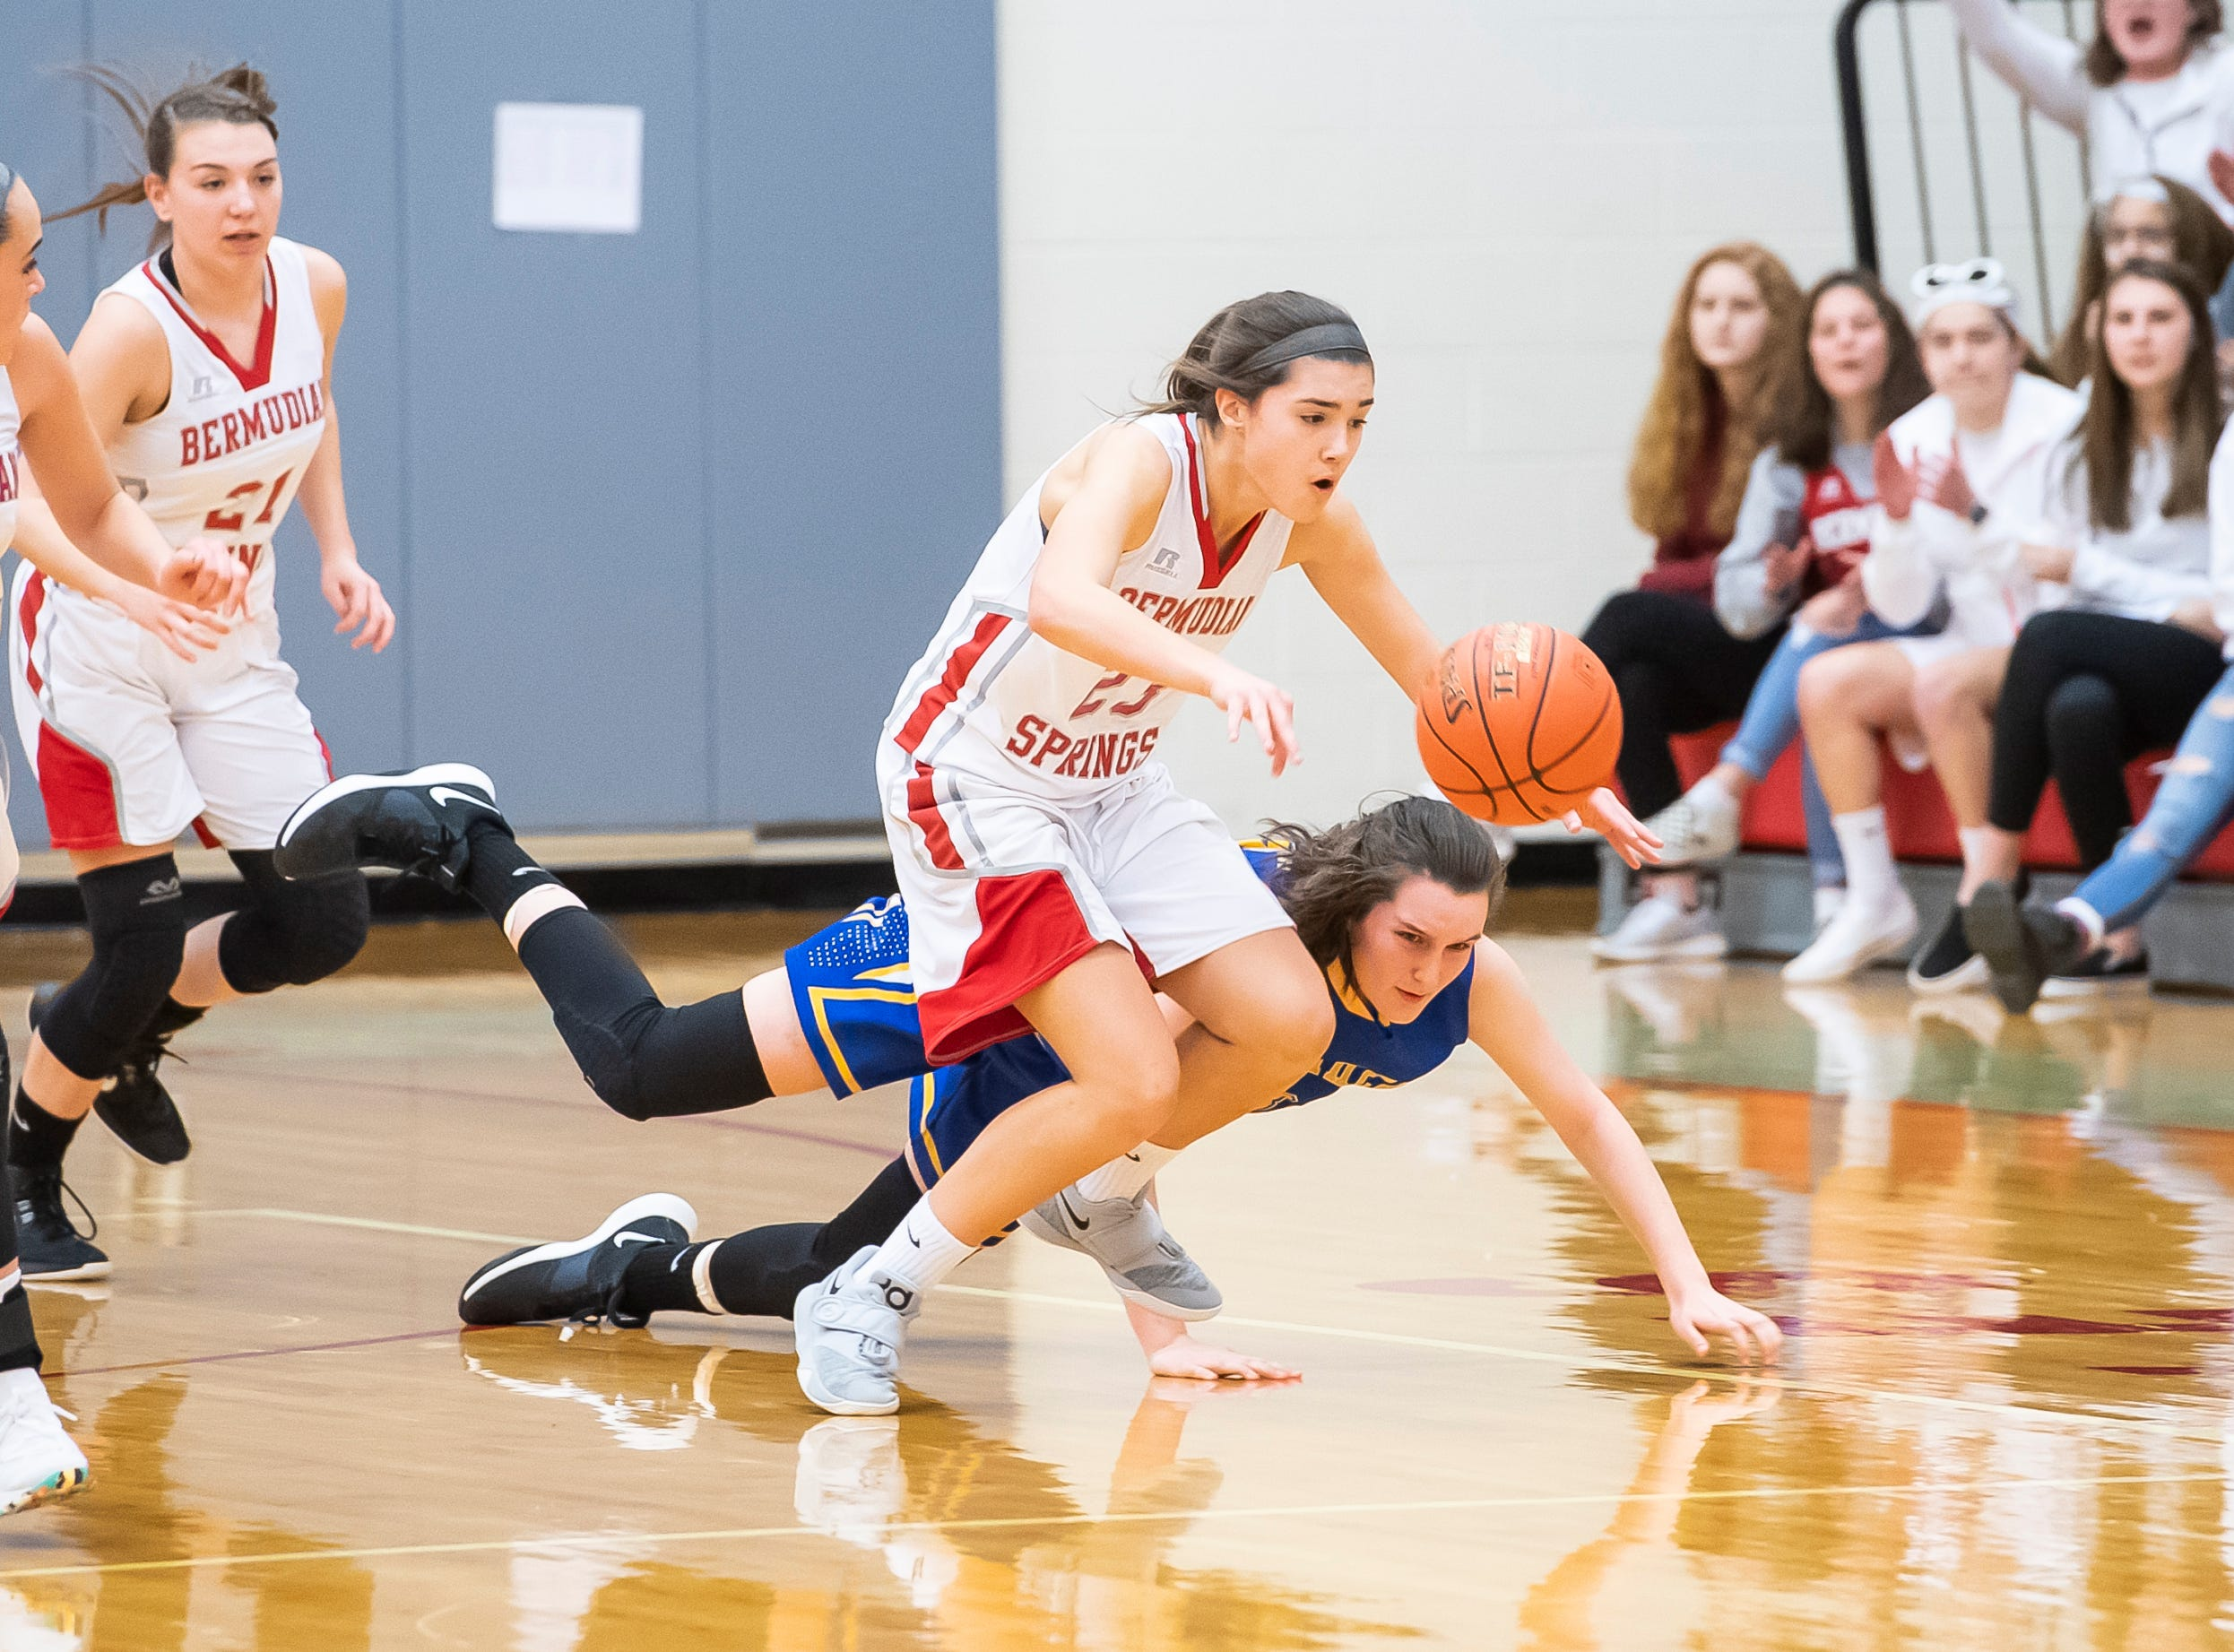 Bermudian Springs' Bailey Oehmig makes the steal on Northern Lebanon's RaeAnn Lessing in the first round of the District III 4-A playoffs Tuesday, February 19, 2019. The Eagles won 58-52.